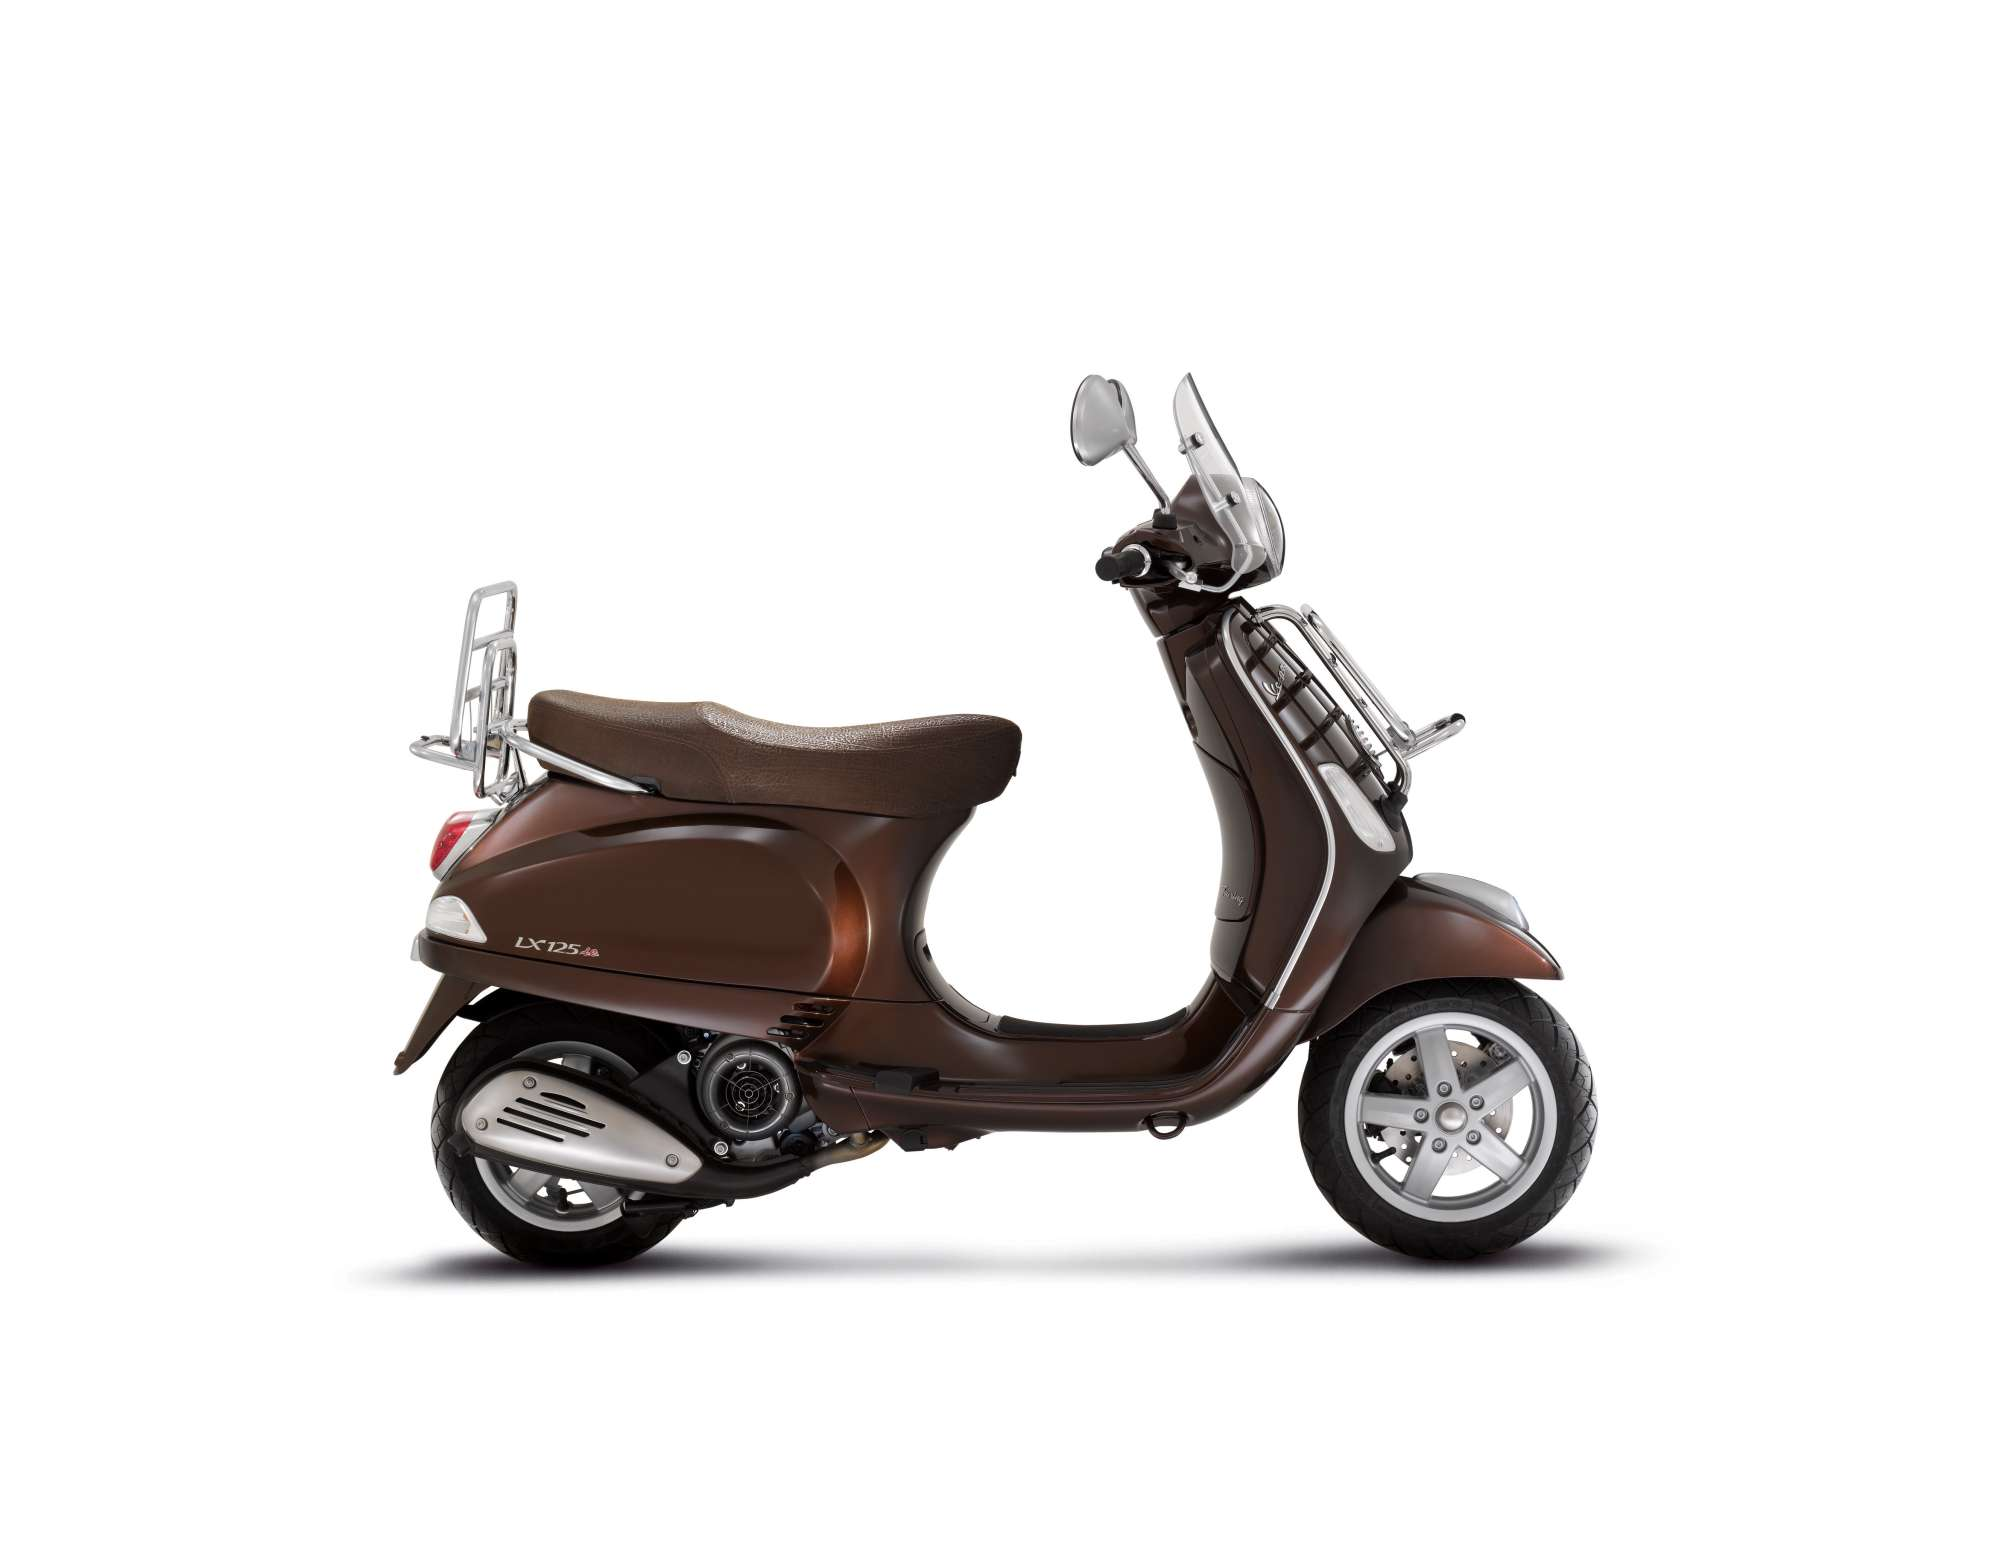 gebrauchte vespa lx 50 2t touring motorr der kaufen. Black Bedroom Furniture Sets. Home Design Ideas